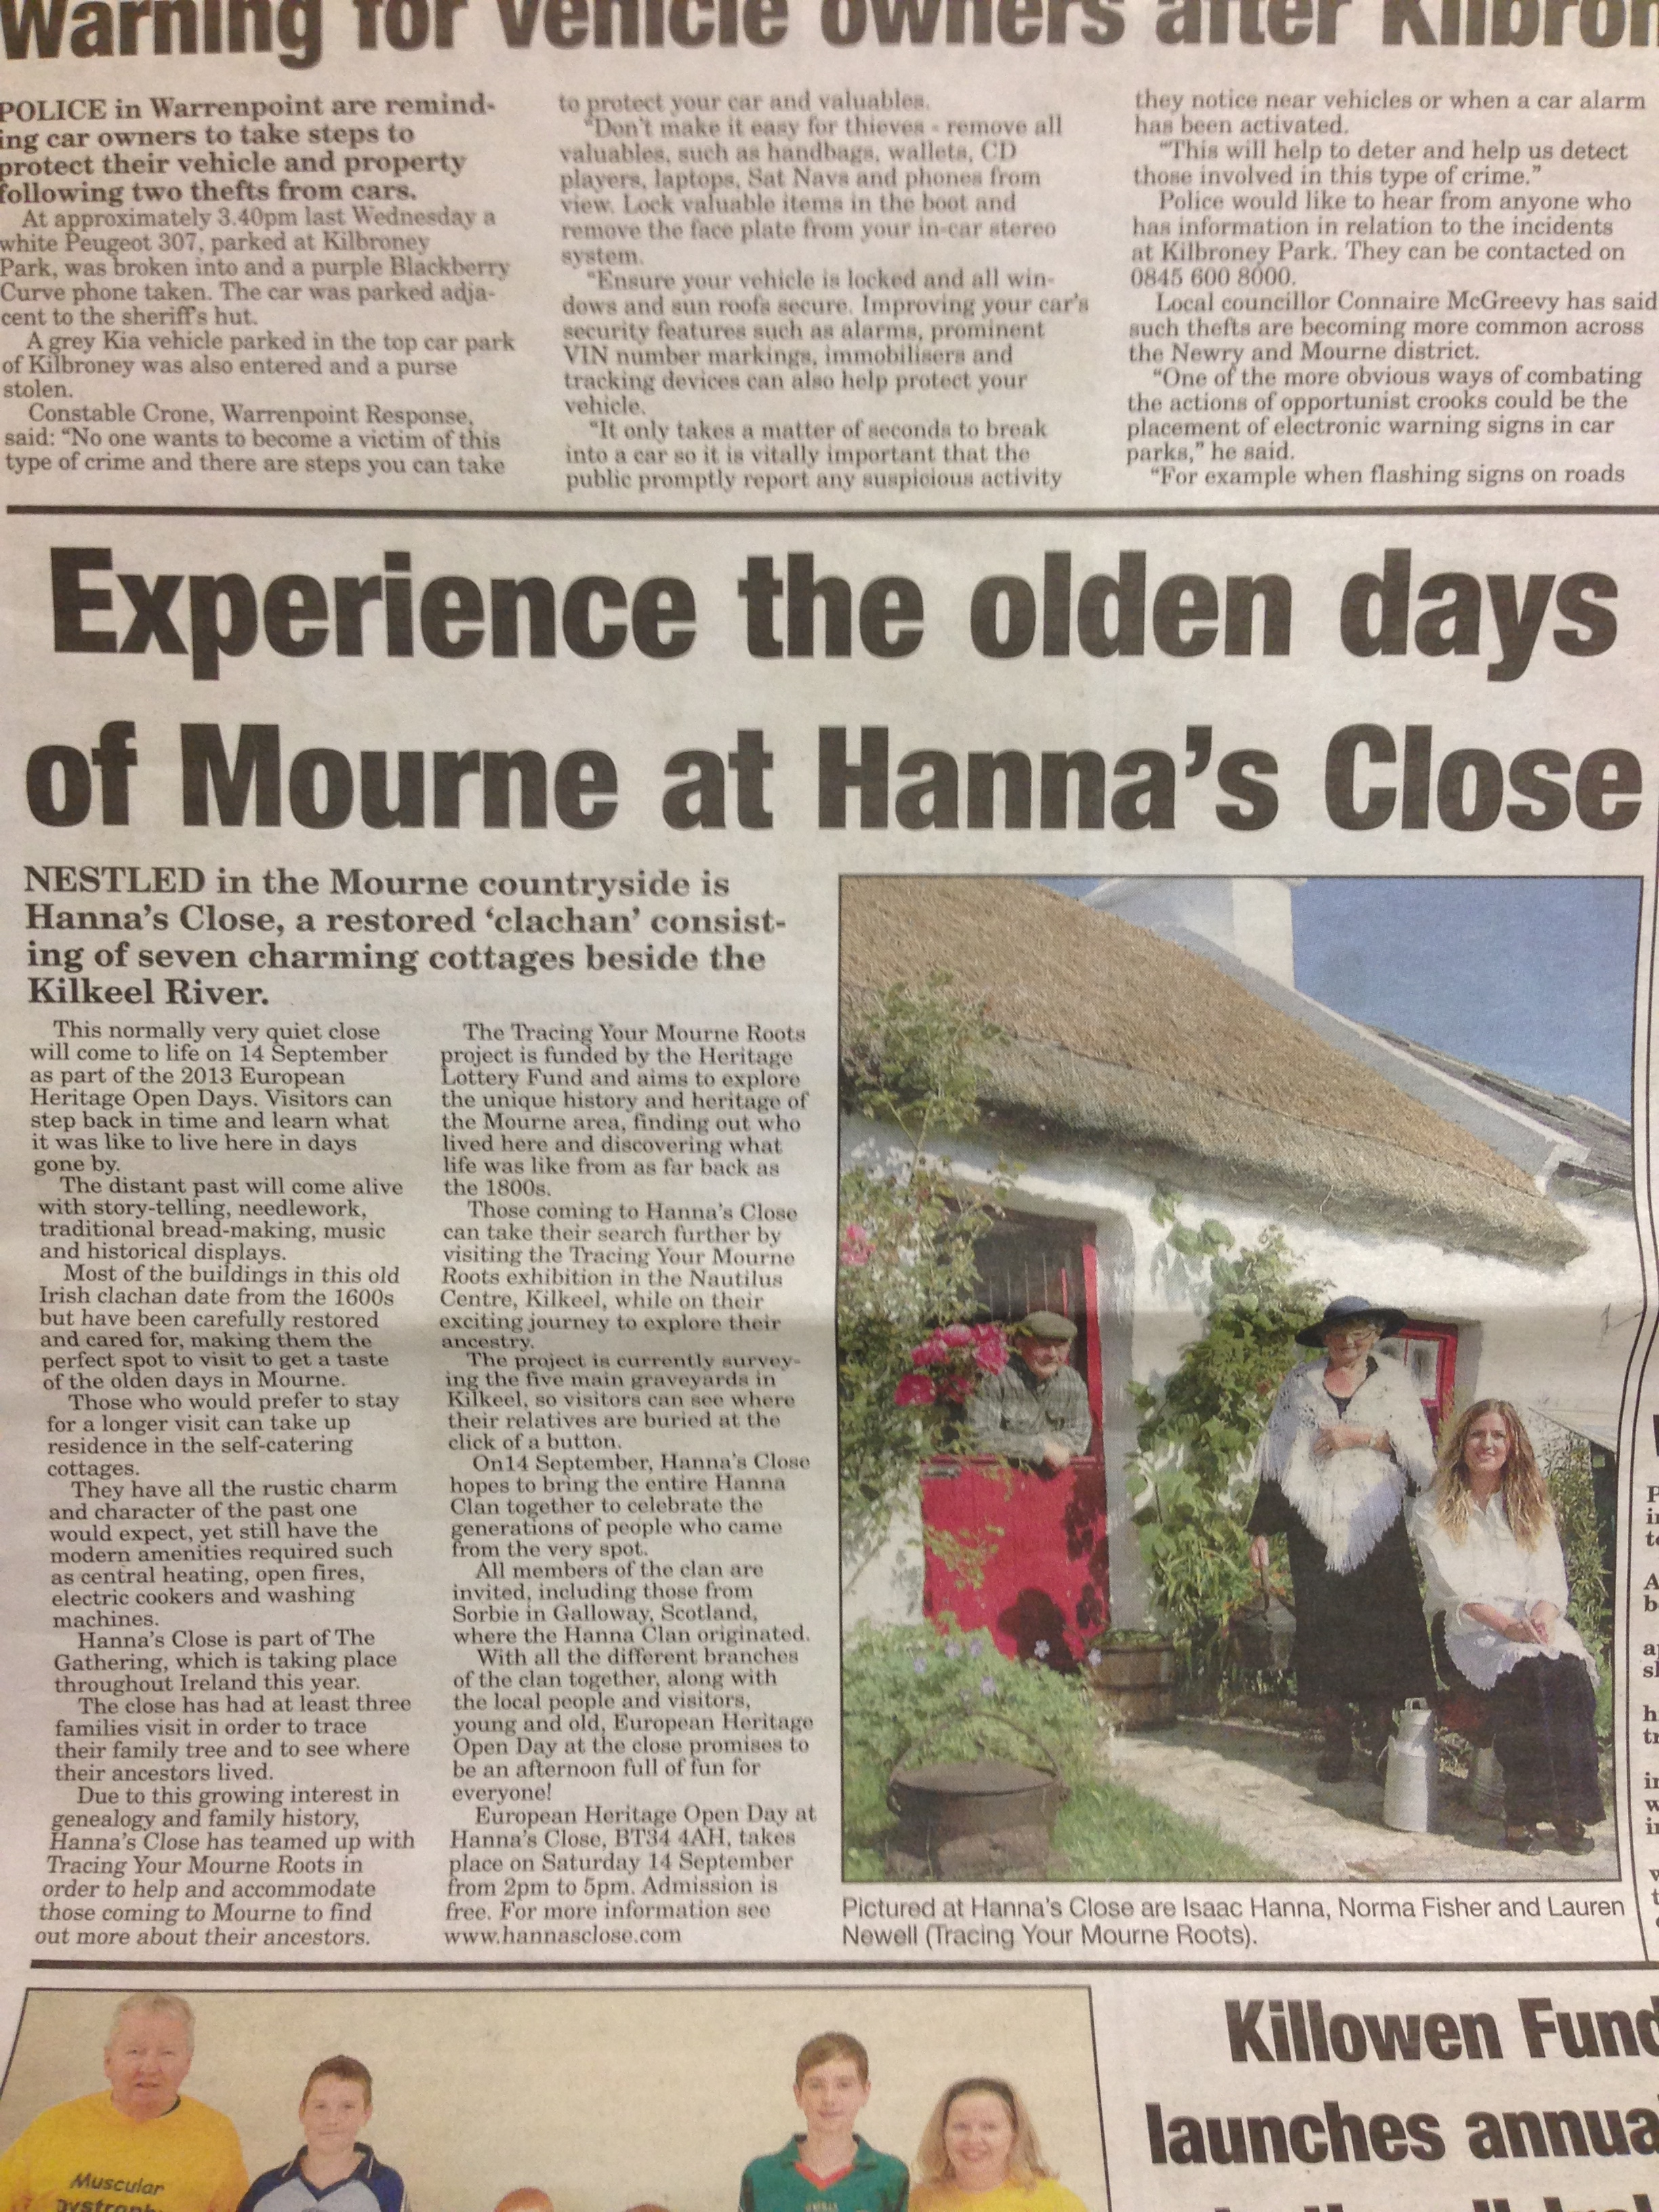 Press release in local paper The Mourne Observer to promote EHODNI with Hanna's Close in September